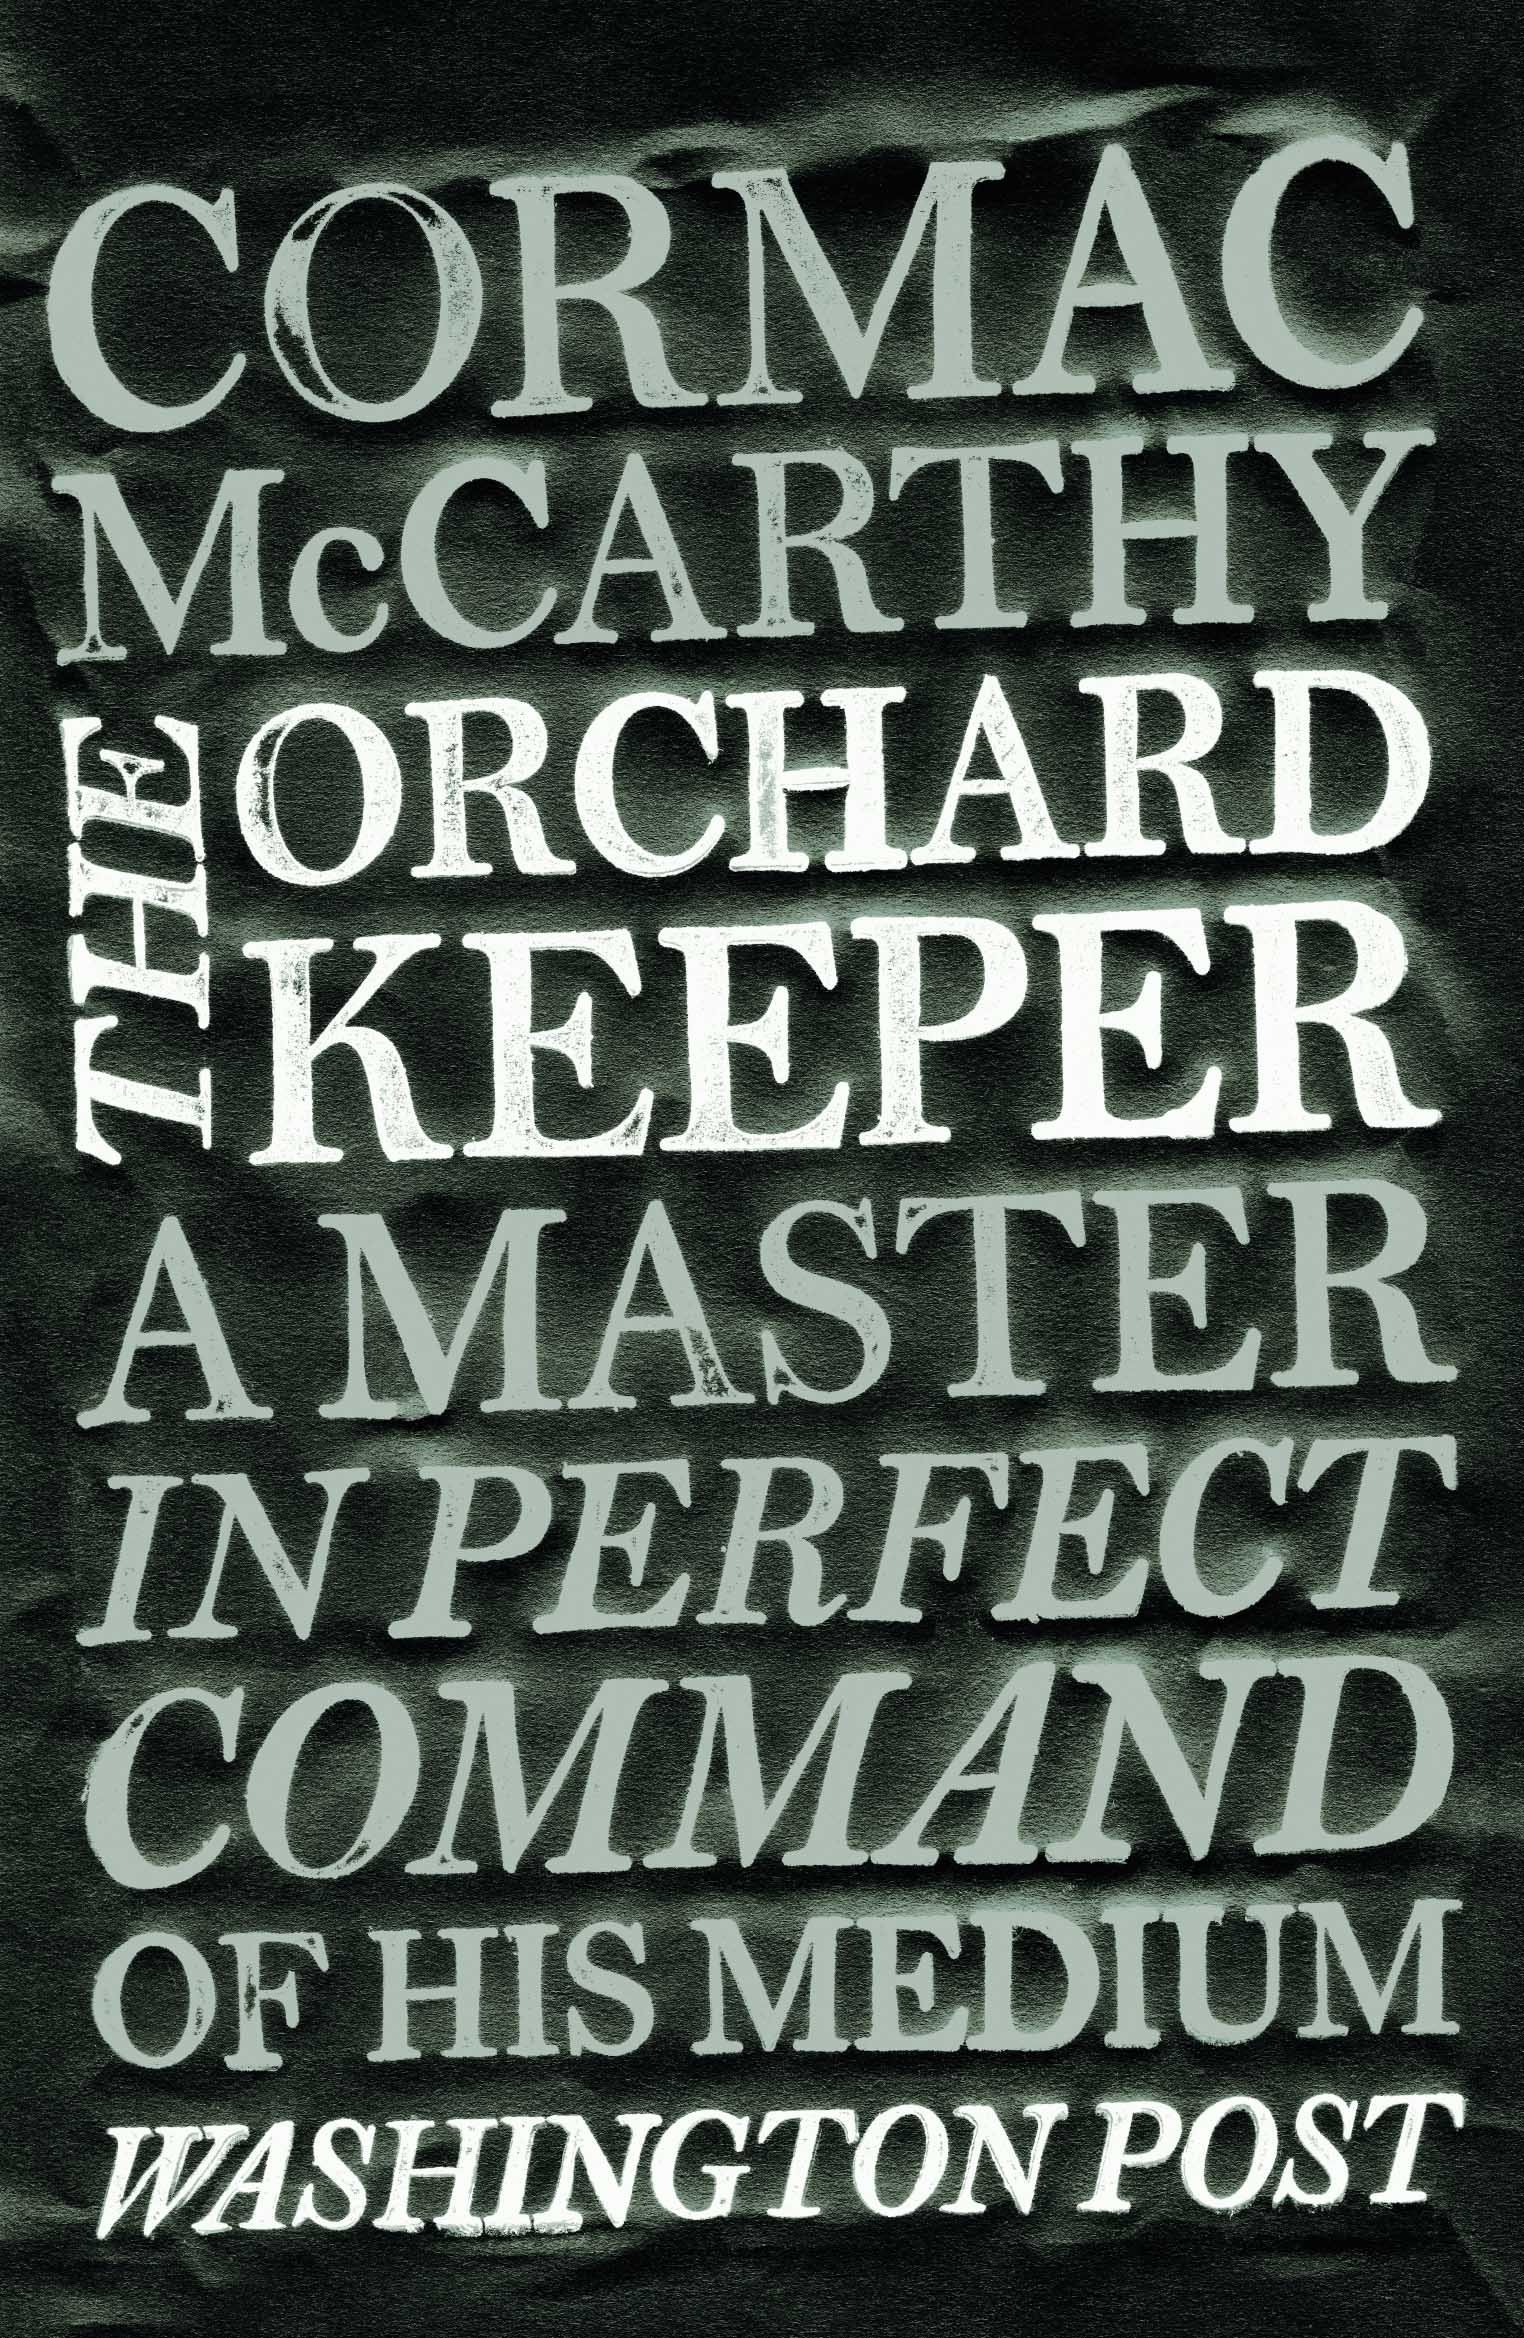 The Orchard Keeper: Amazon: Cormac Mccarthy: 9780330511254: Books